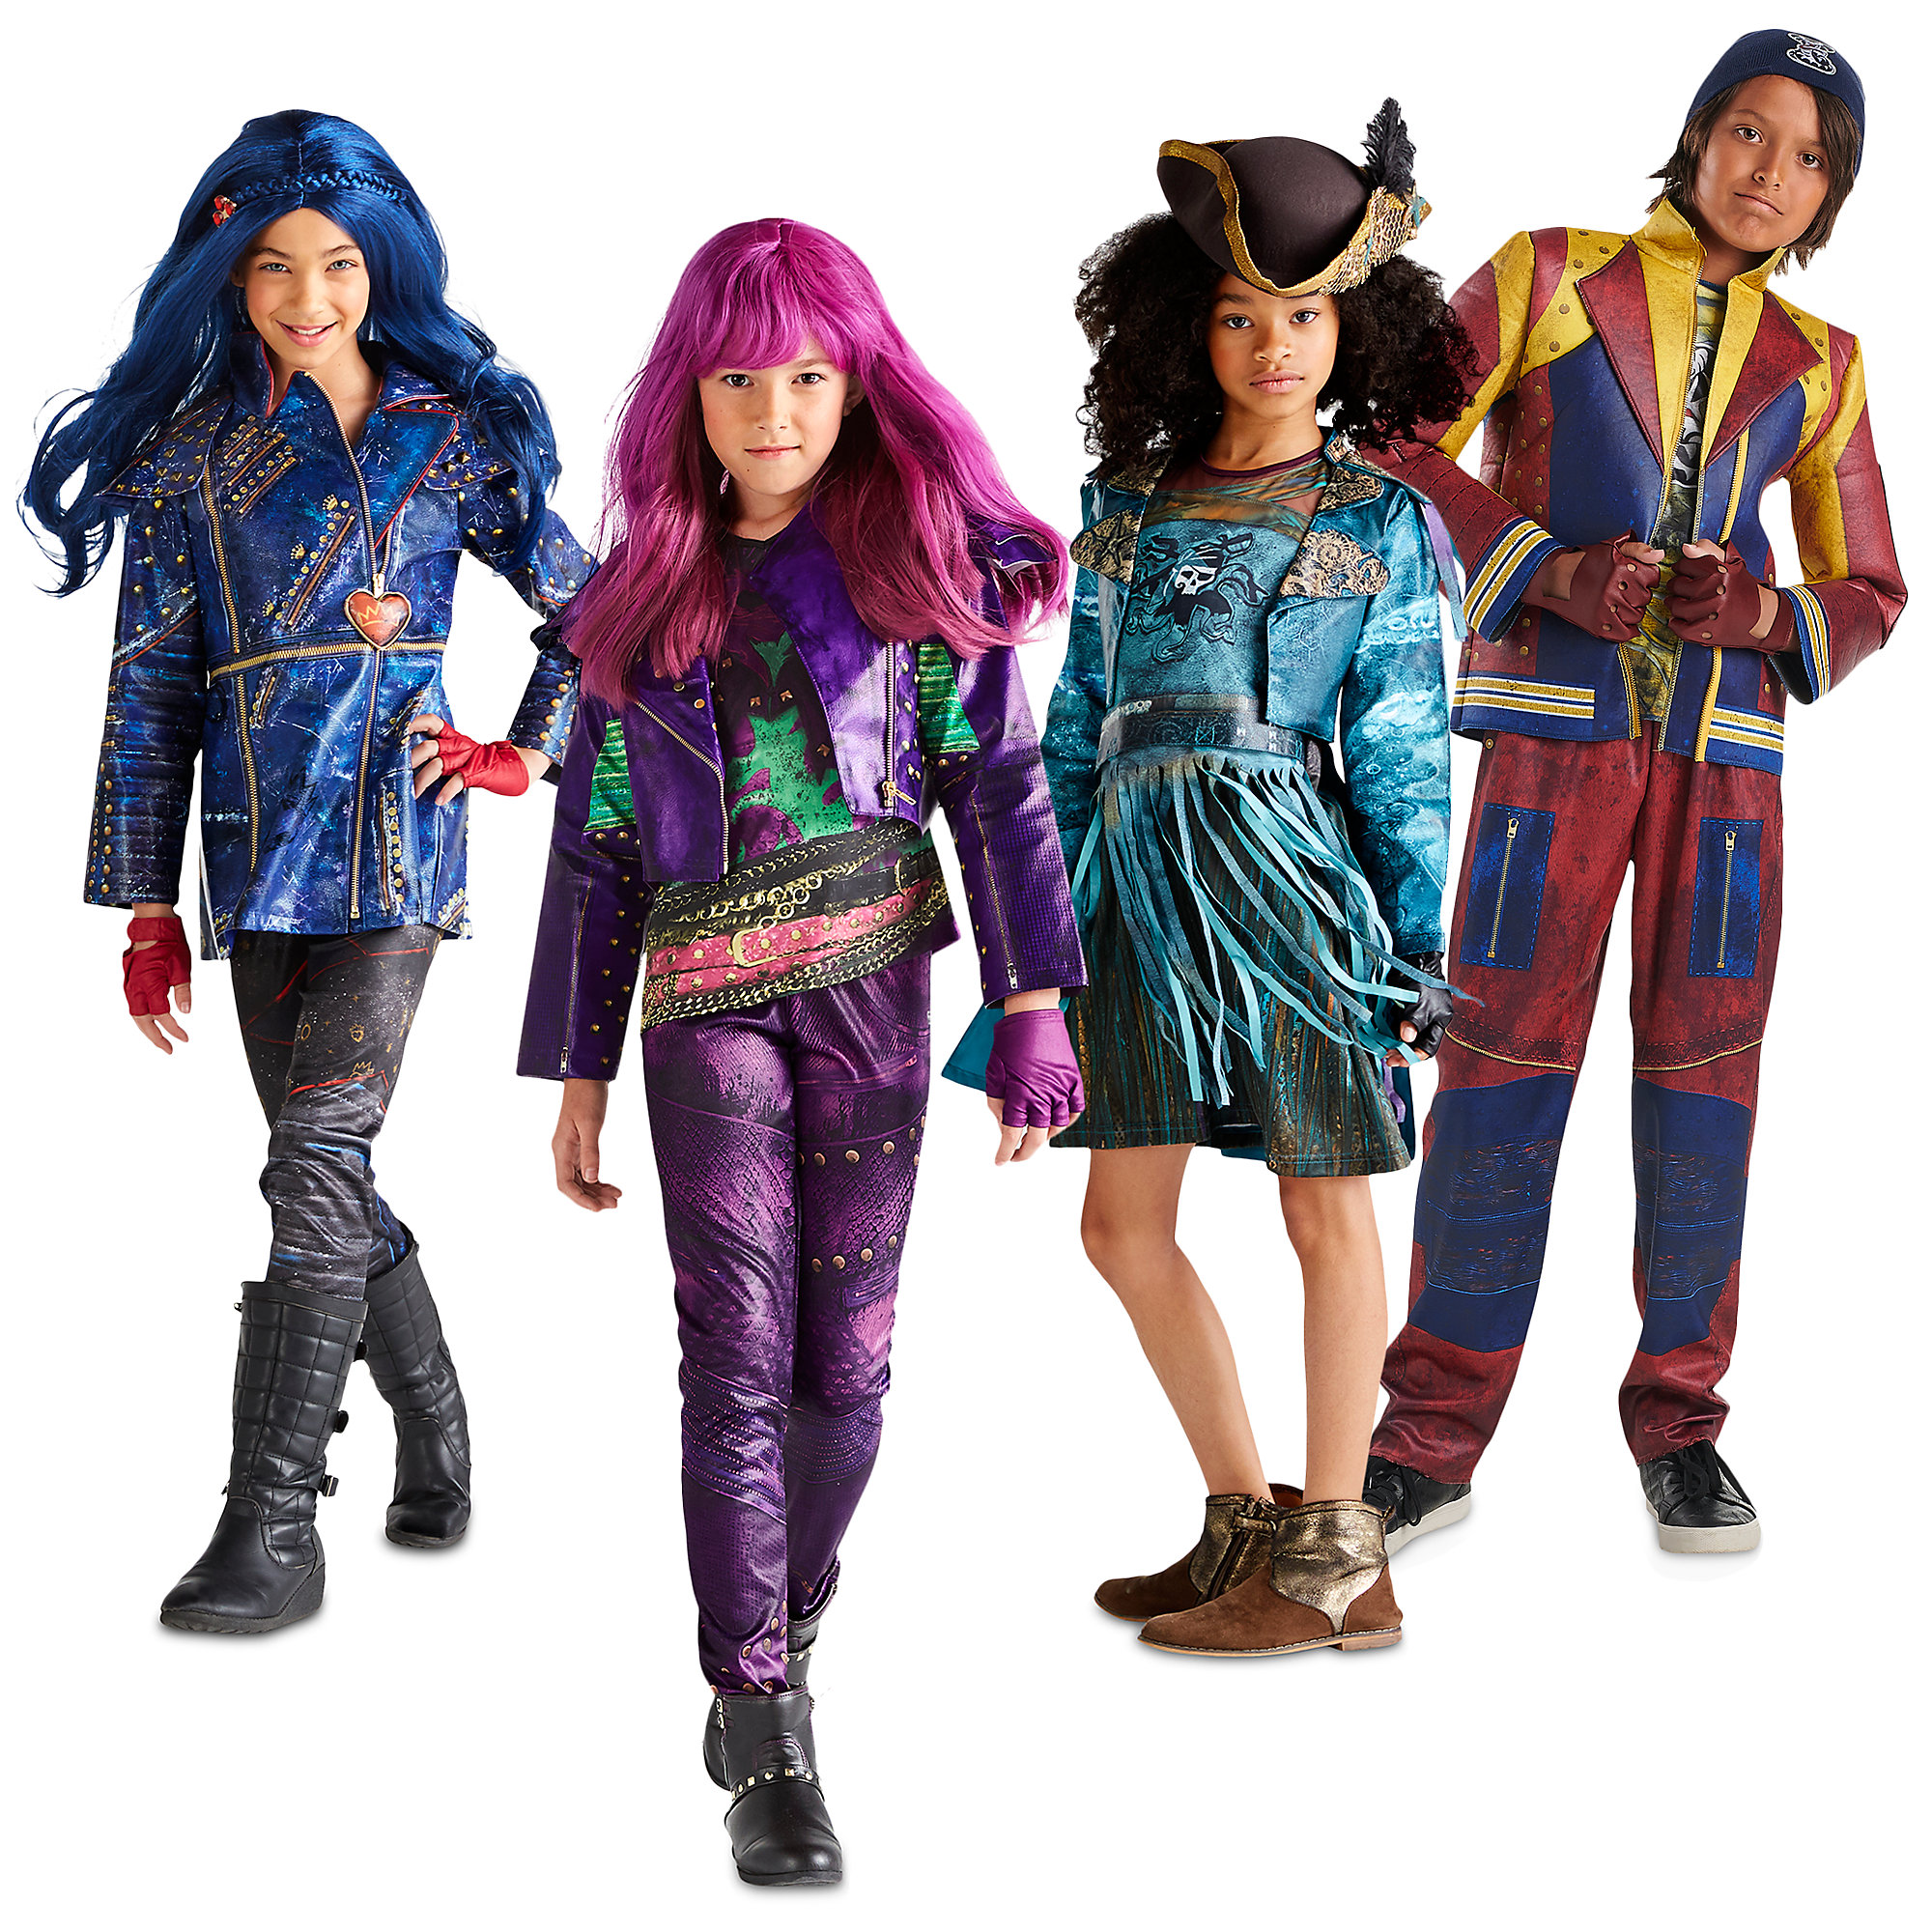 Descendants Costume Collection for Kids   shopDisney Product Image of Descendants Costume Collection for Kids   1